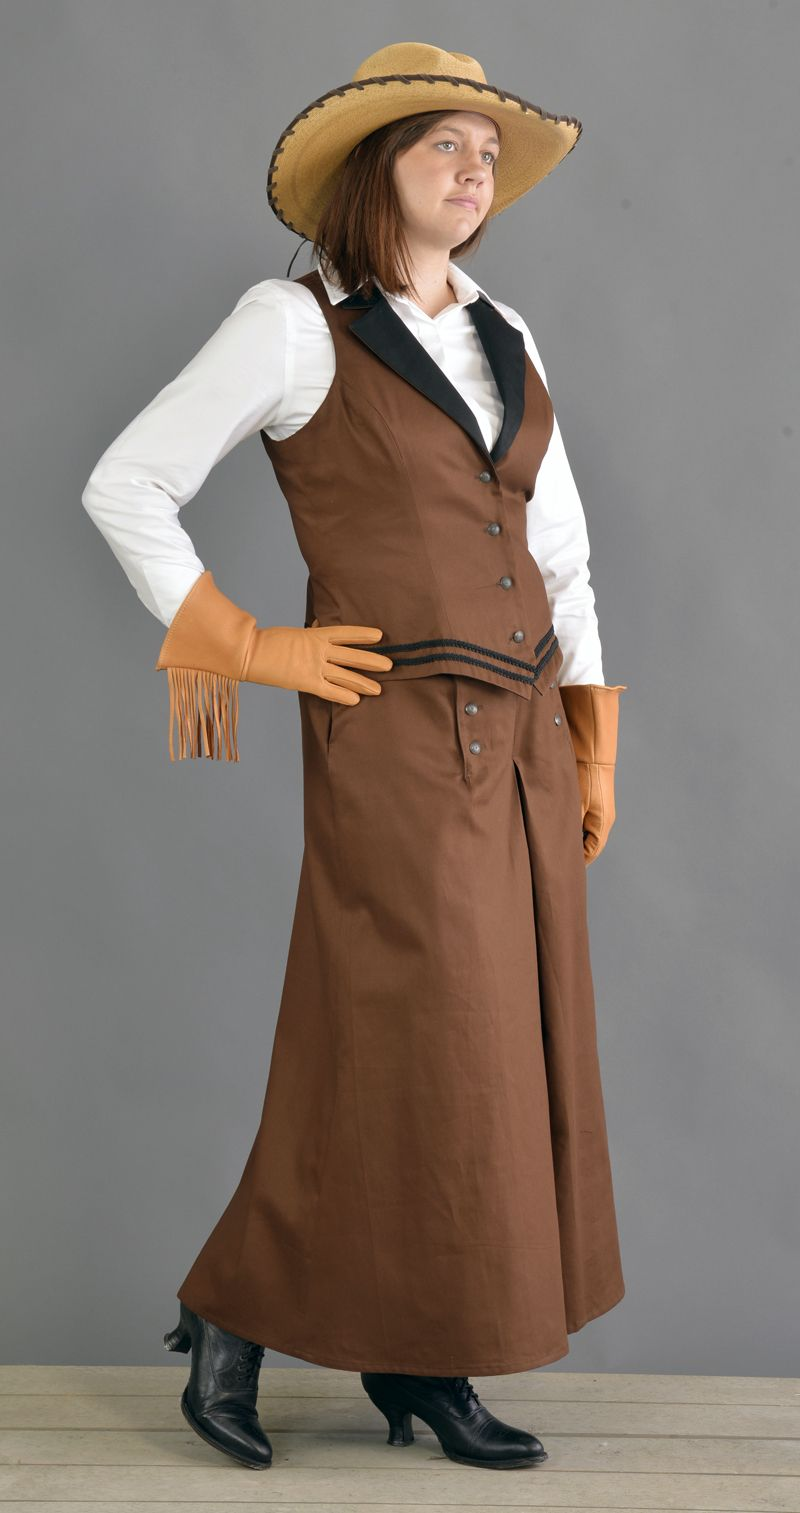 Western Riding Skirt Made in USA by Cattle Kate Western